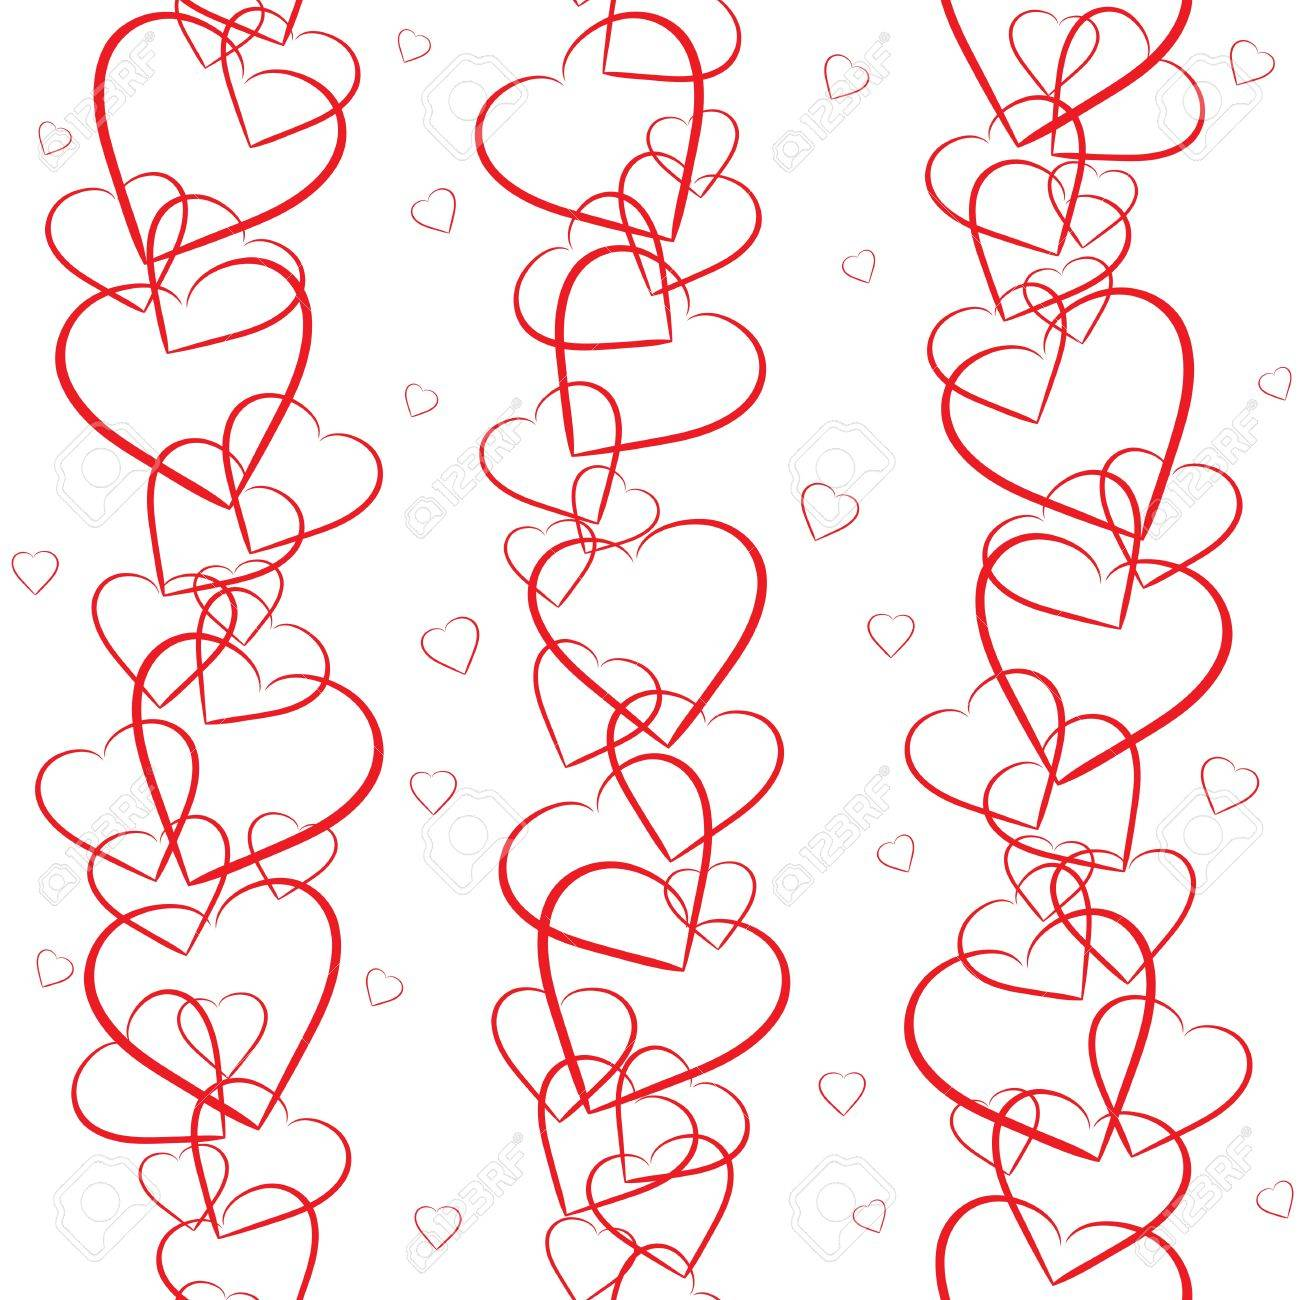 Seamless background with red hearts on white background Stock Vector - 16703469